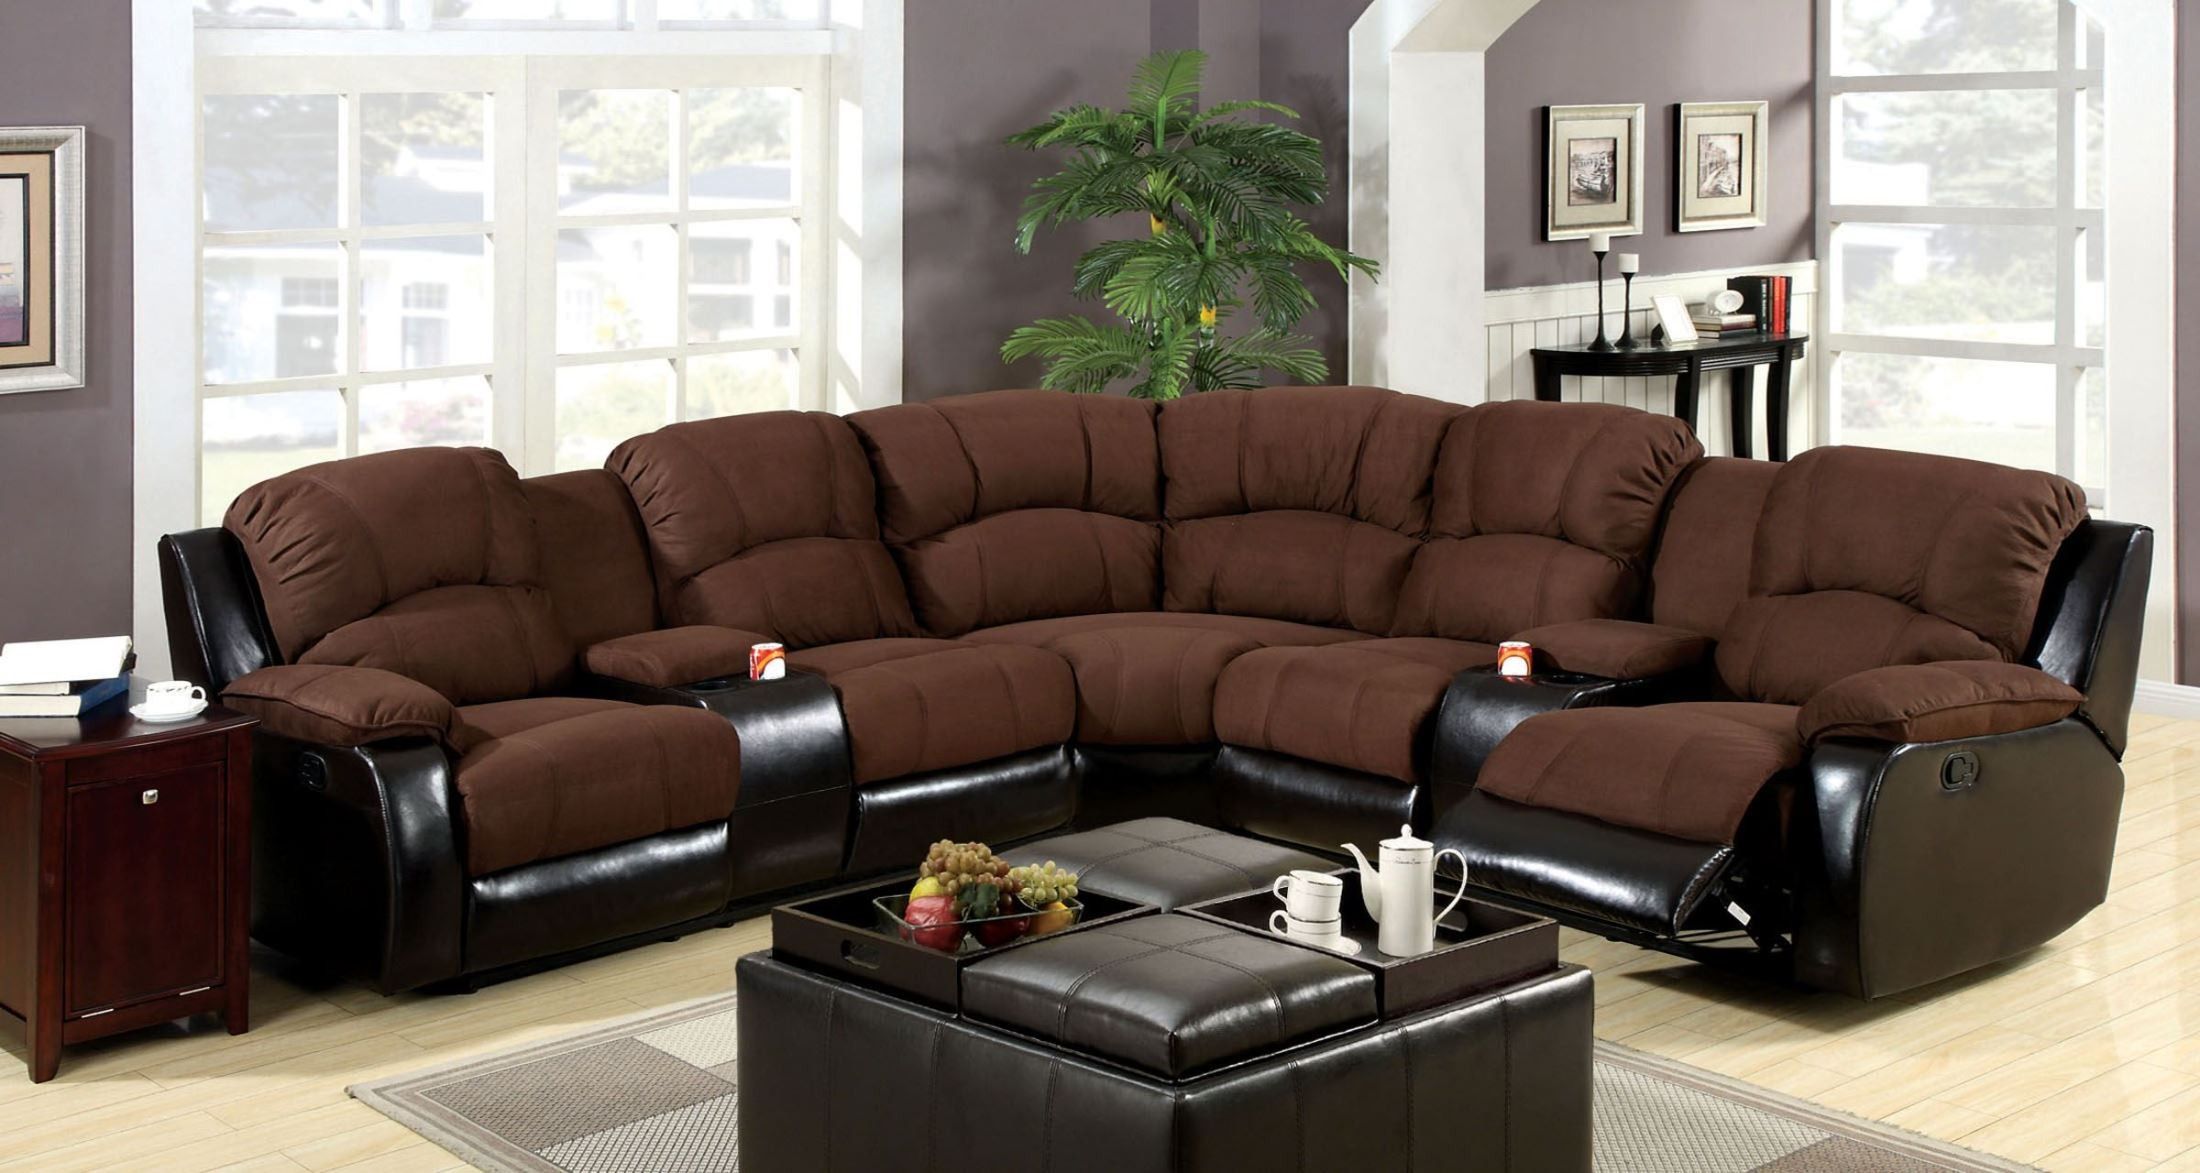 wolcott espresso leatherette reclining sectional from furniture of america cm6557 pk coleman. Black Bedroom Furniture Sets. Home Design Ideas